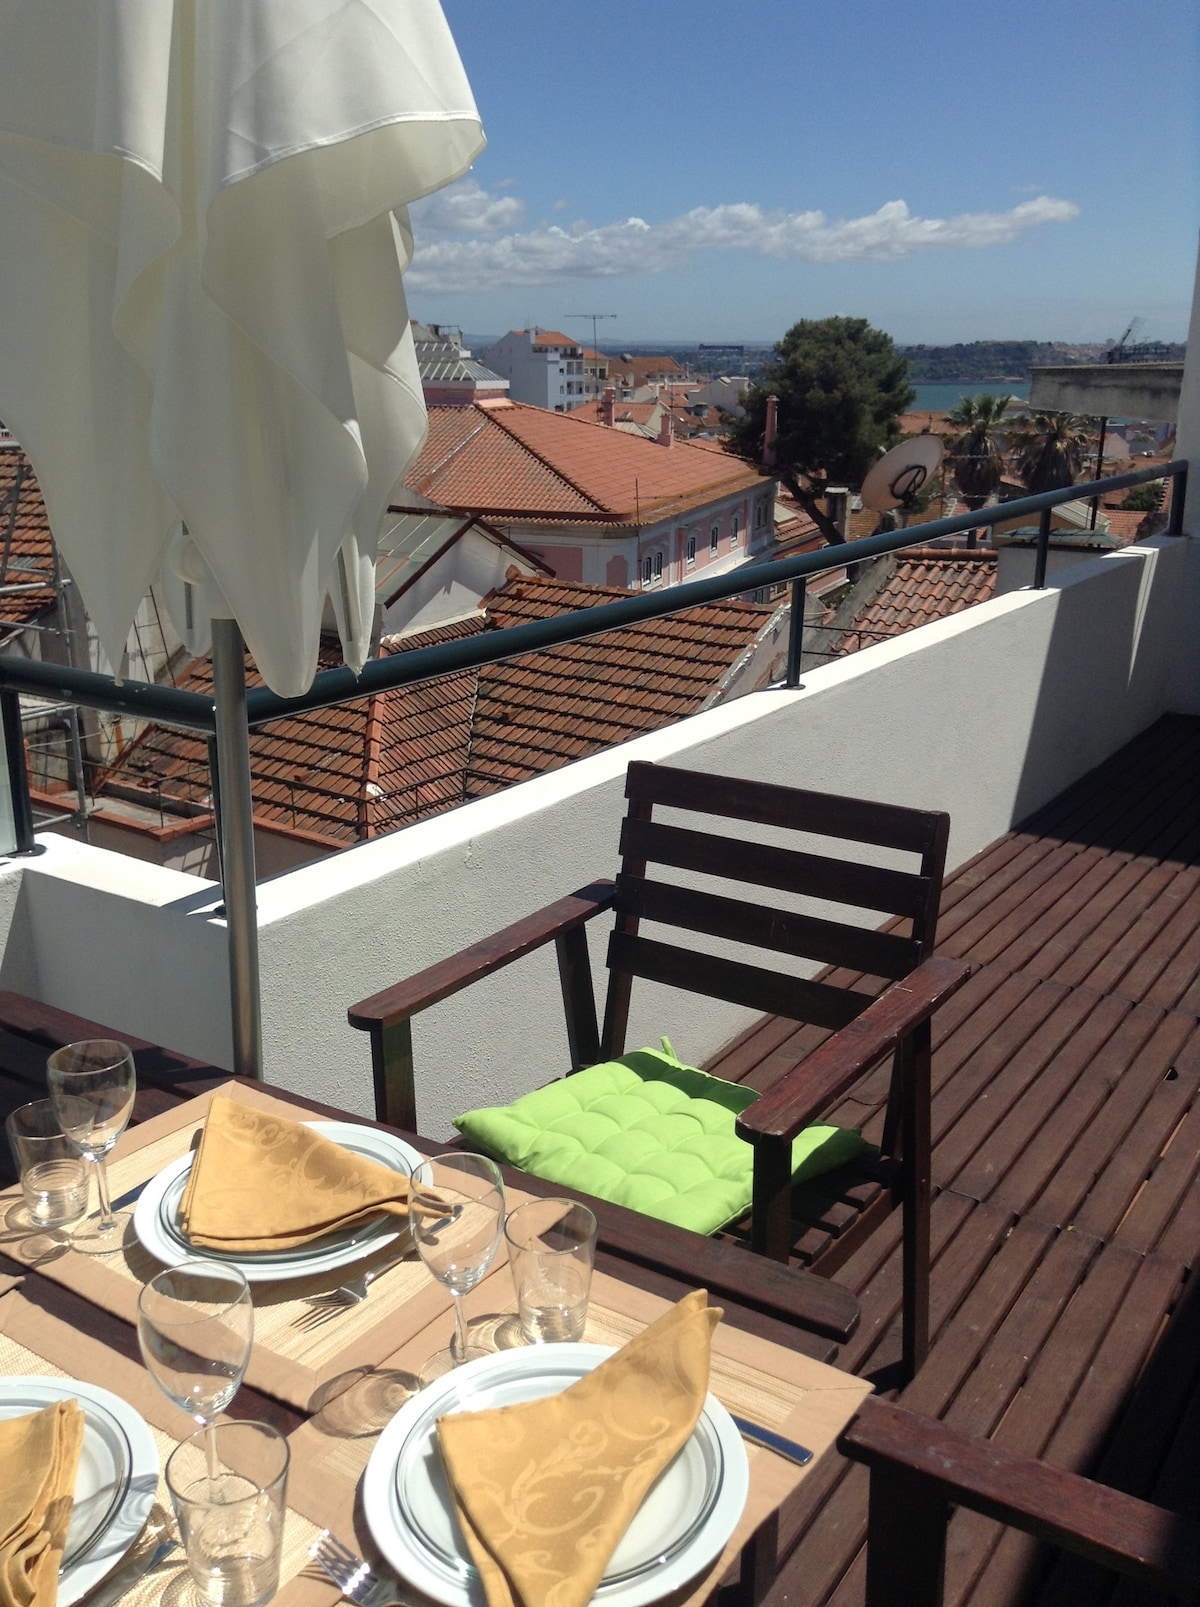 Location Appartement Lisbonne Avec Terrasse Terrasse Et Vue, Centre De Lisbonne - Apartments For Rent